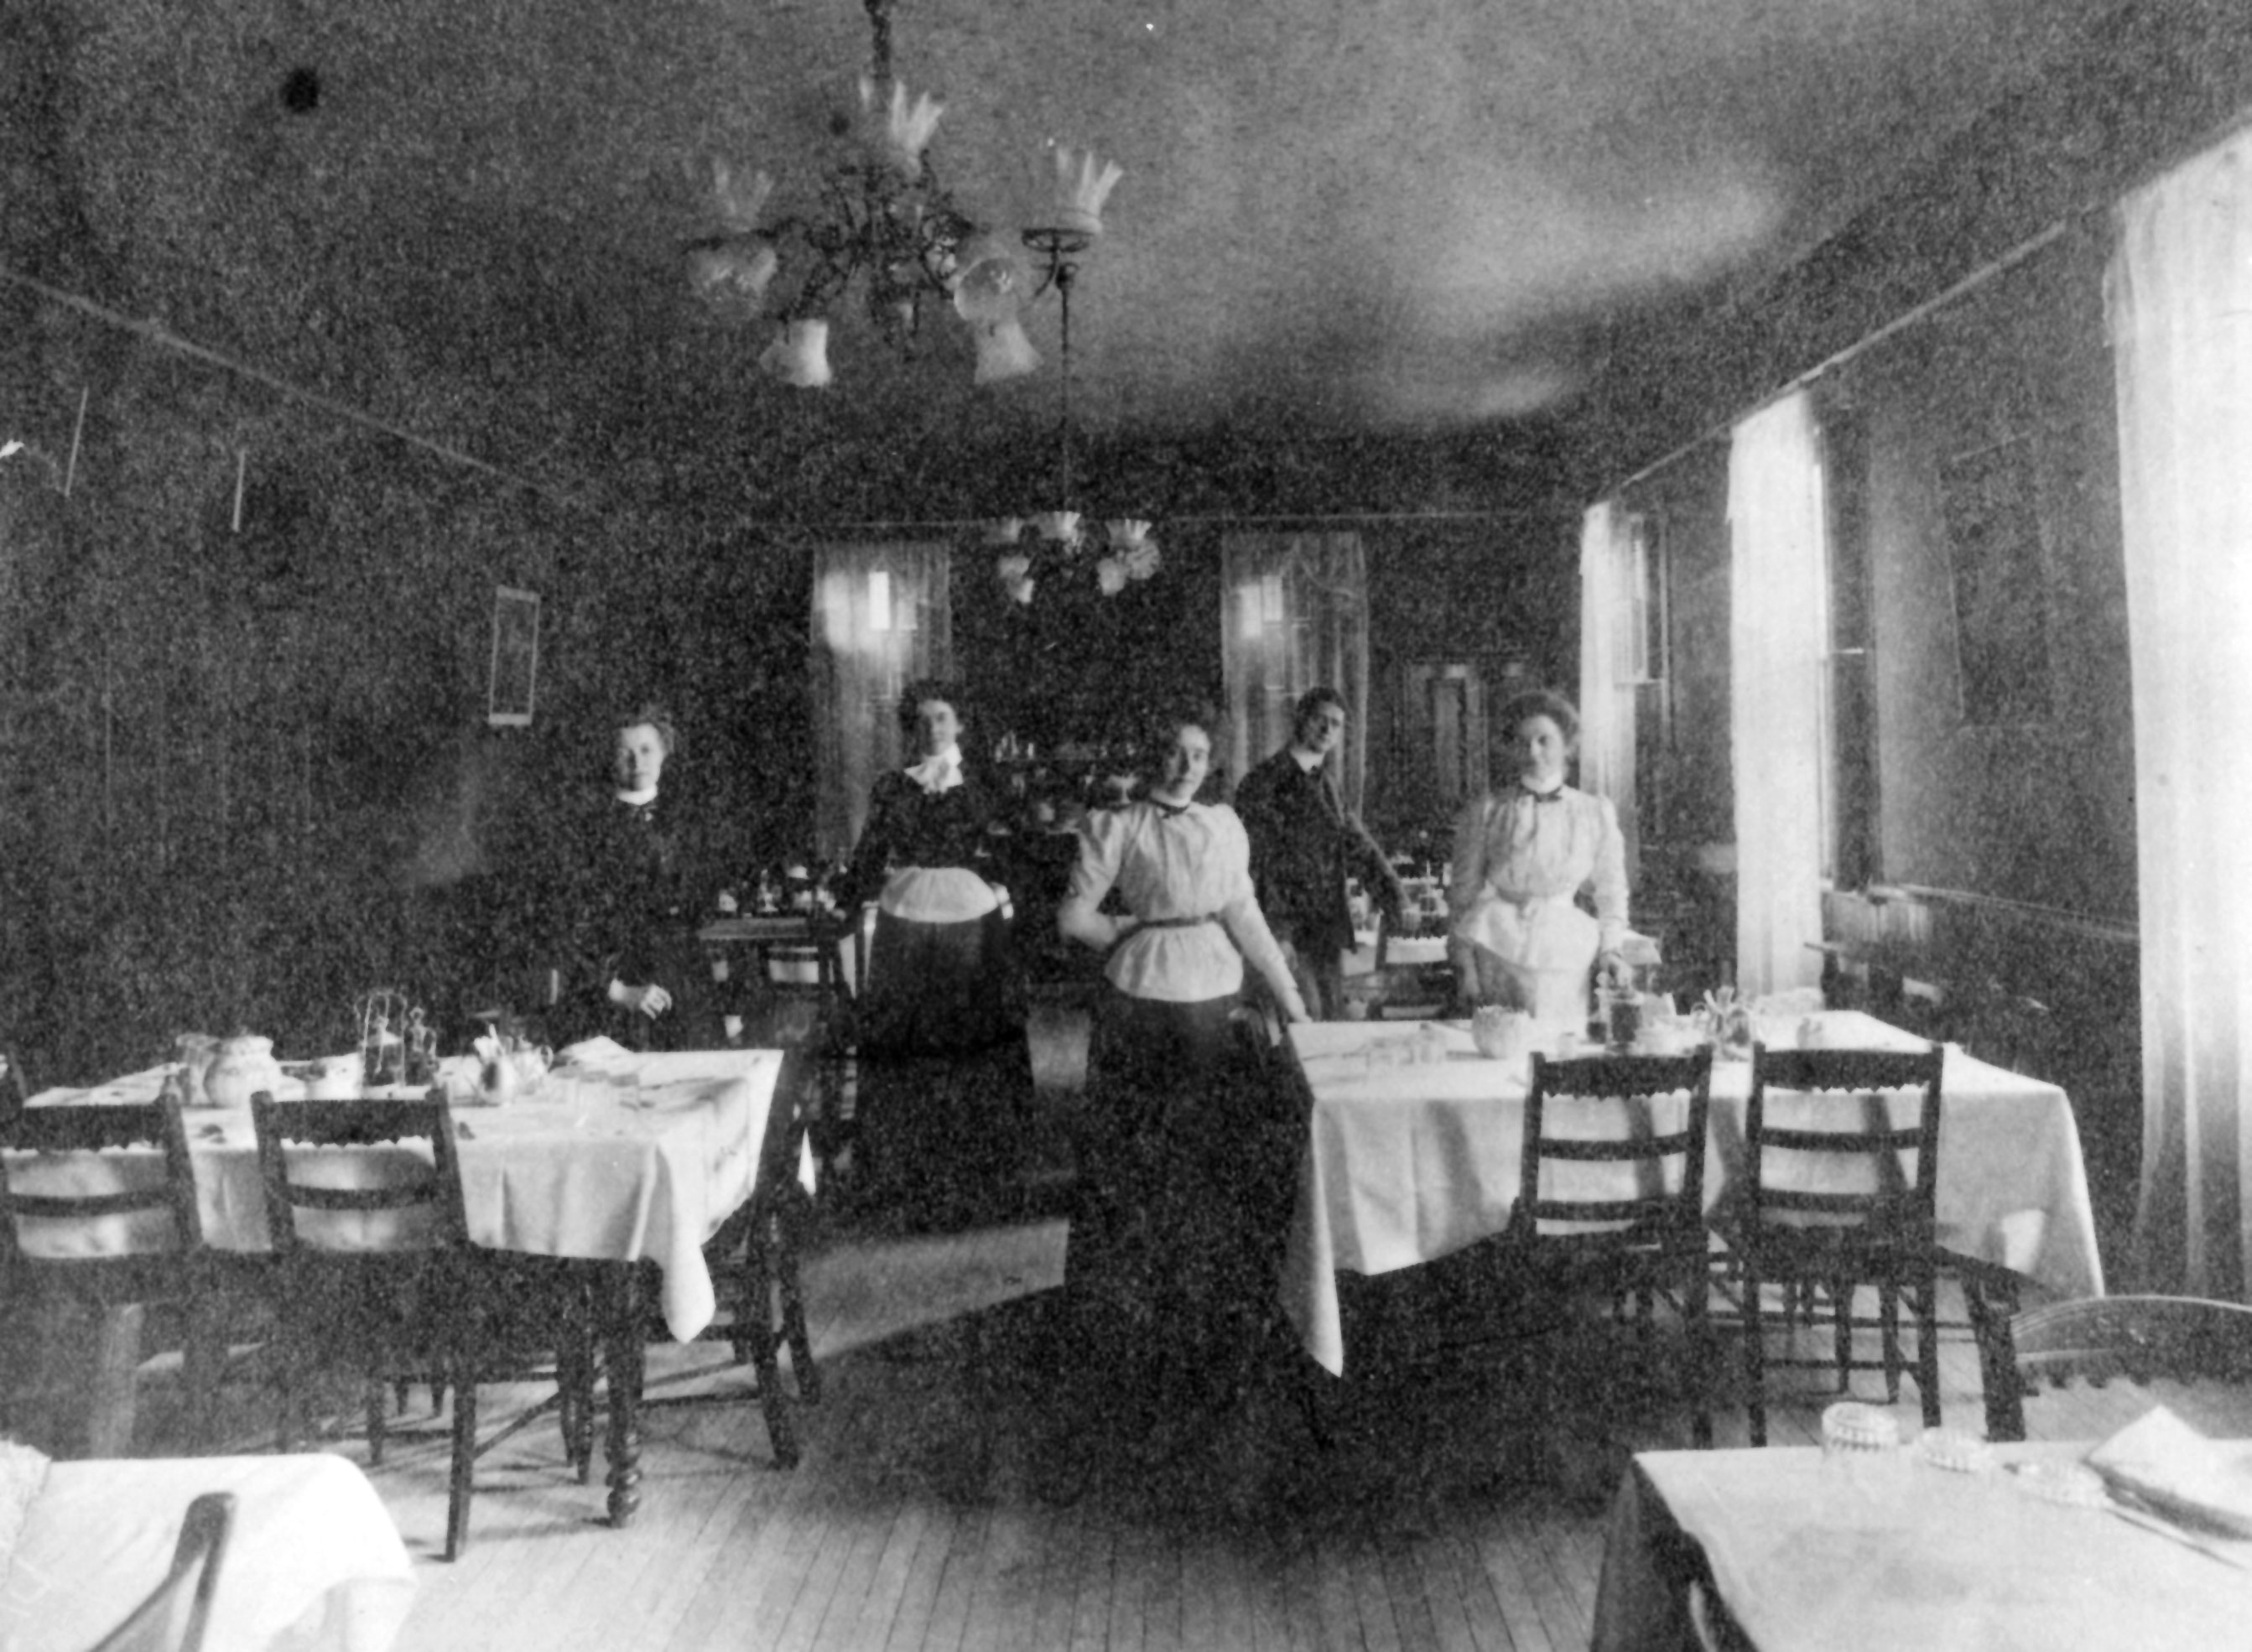 American Hotel dining room image